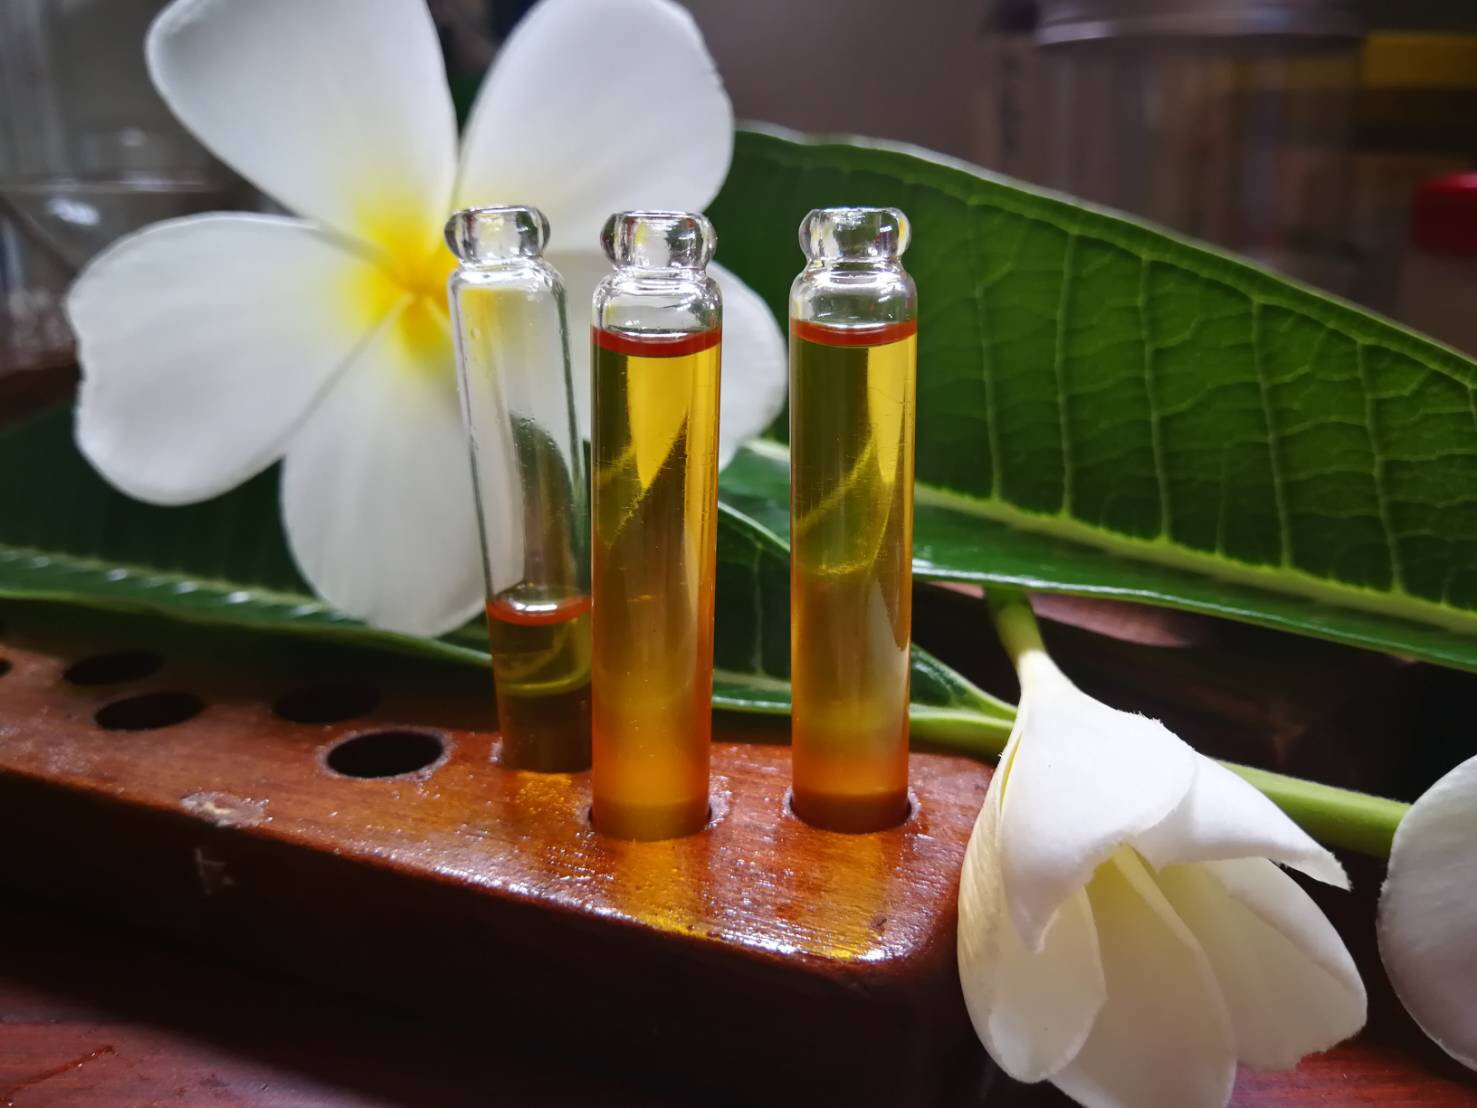 Frangipani oil and its flowers, naturally cultivated and lovingly hand crafted on-site at Tony and Tha's home-based plantation in the Vietnam countryside near the border of Cambodia.